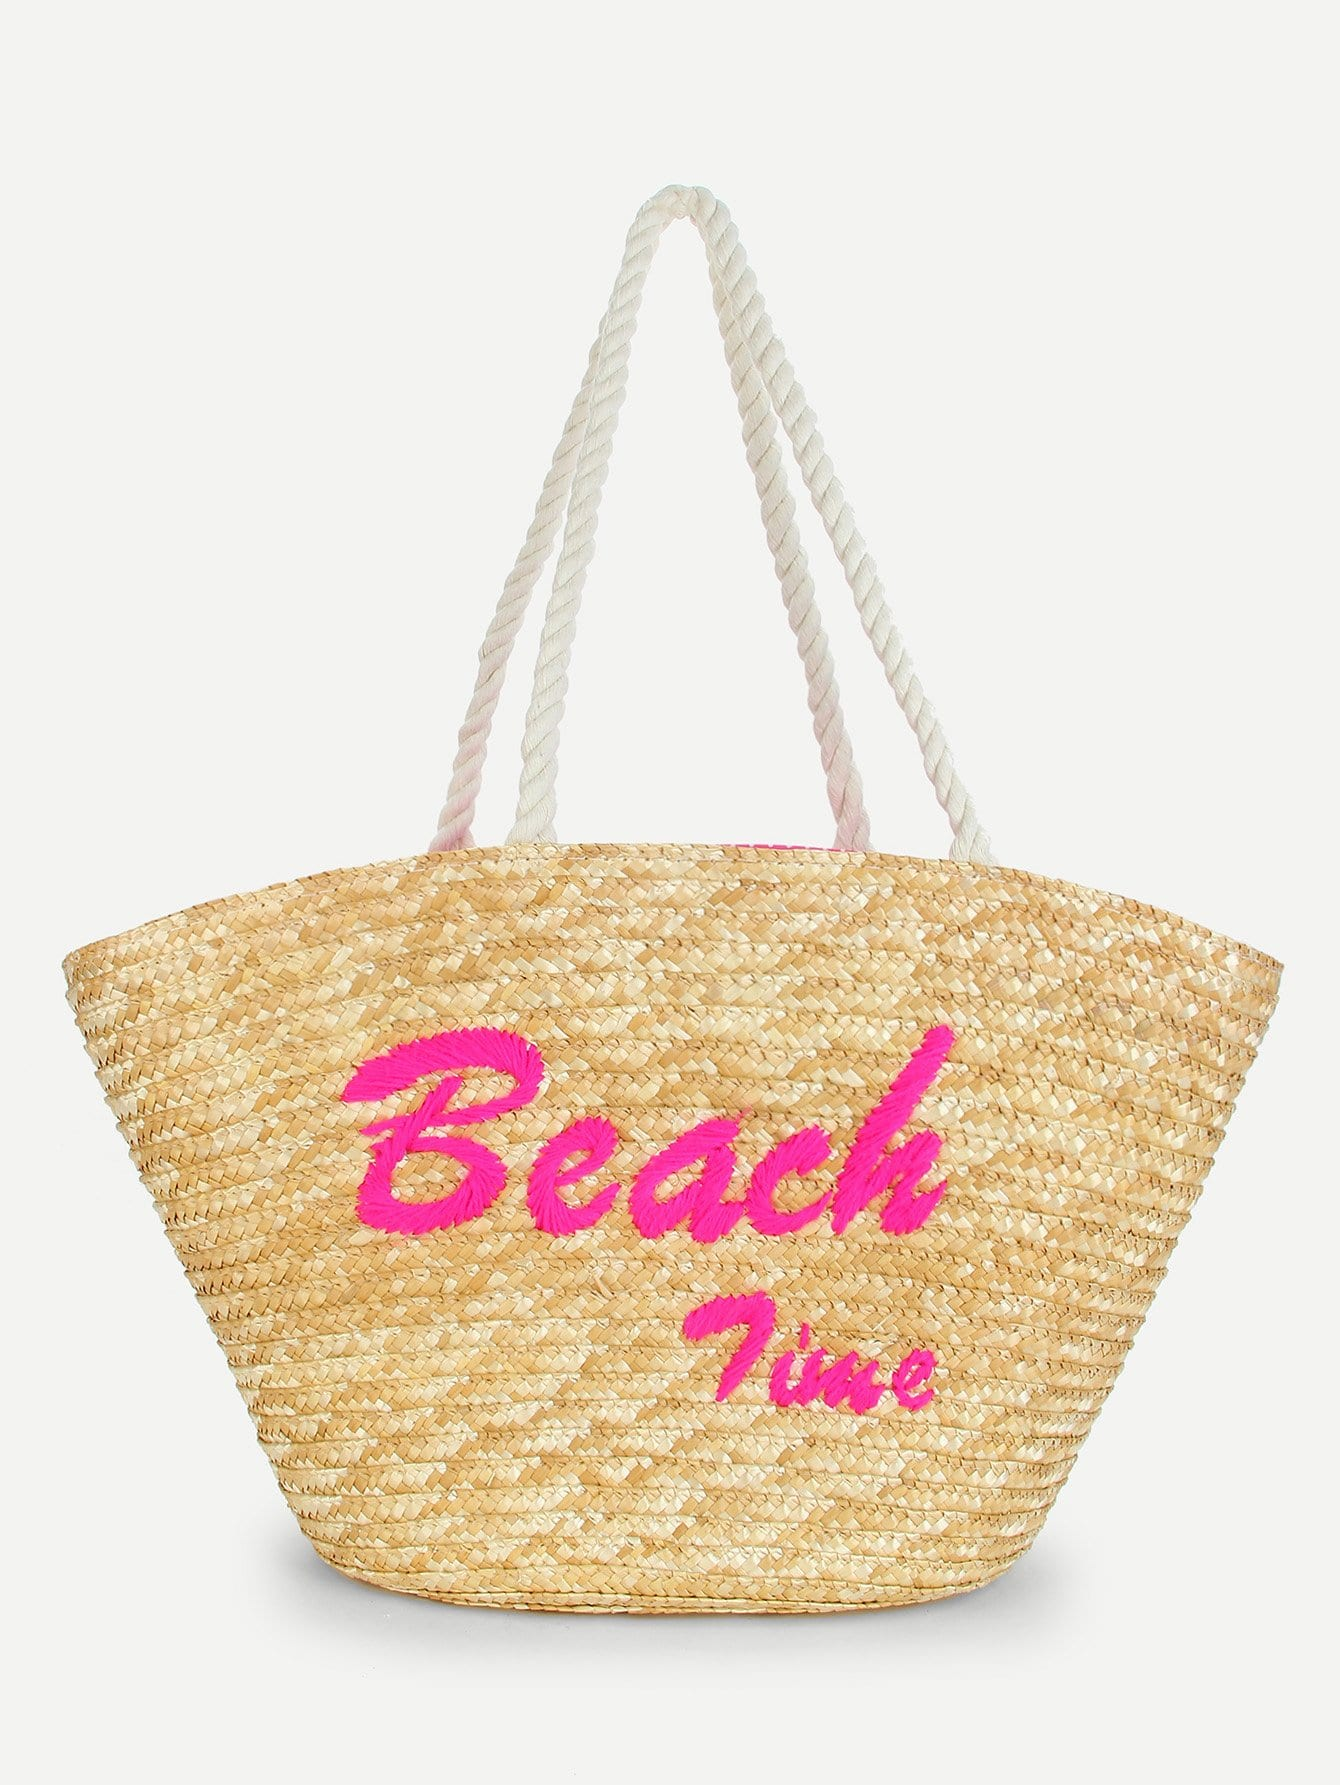 Letter Embroidery Straw Tote Bag straw flamingo embroidered tote bag